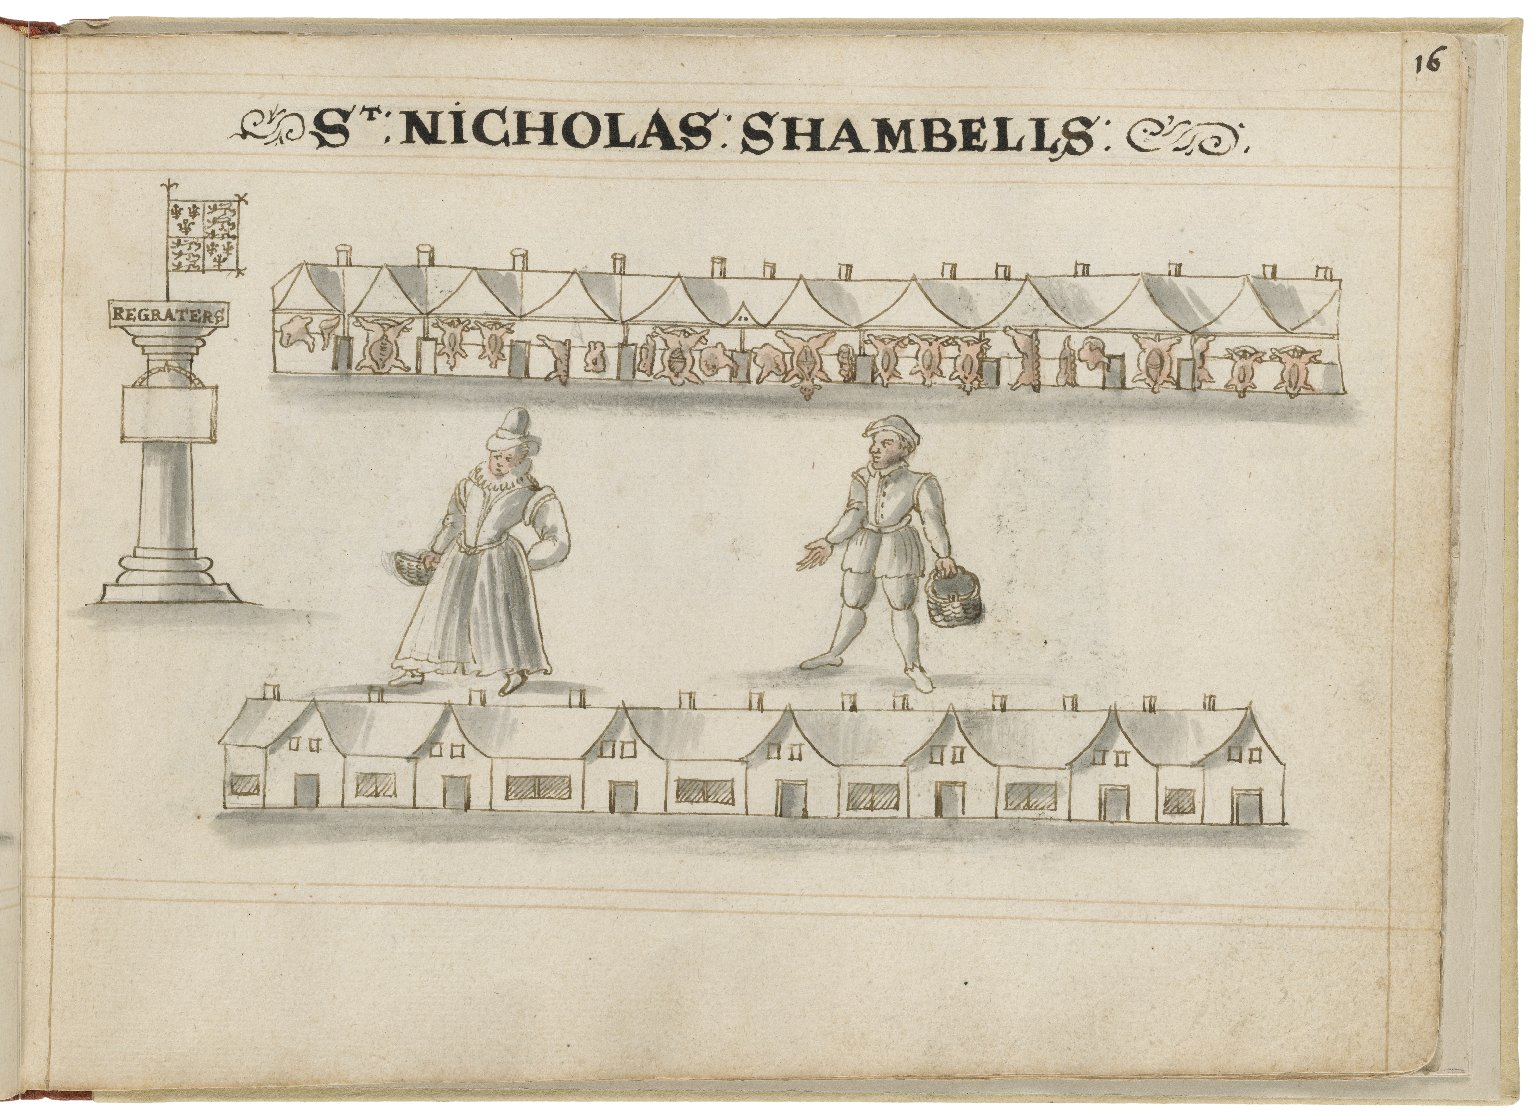 Drawing of St. Nicholas Shambles by Hugh Alley. Image courtesy of the Folger Digital Image Collection.